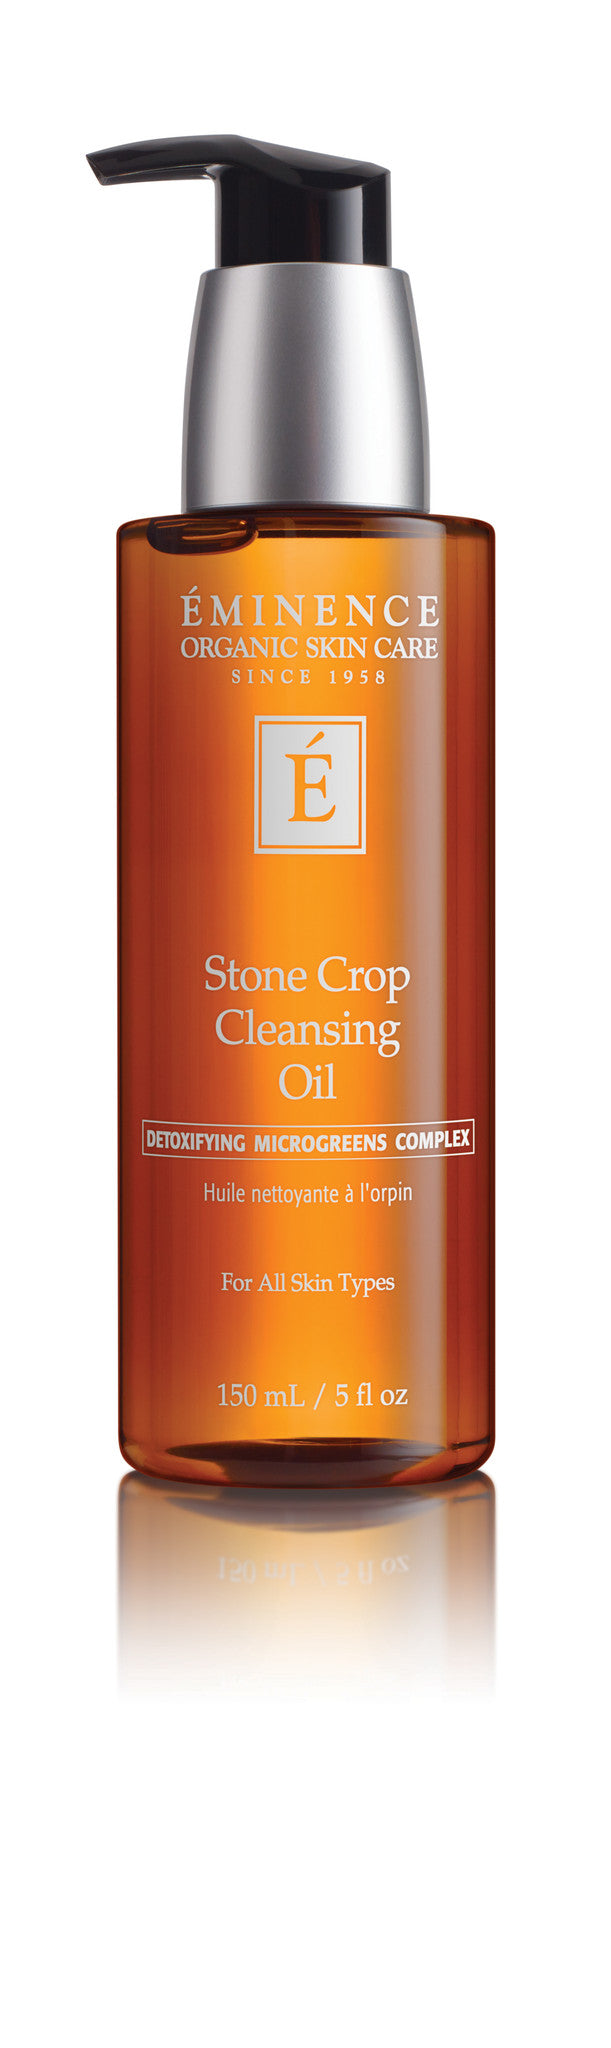 #1 Best Organic Cleansing Oil (not greasy) - Eminence Organic Stone Crop Cleansing Detox Oil